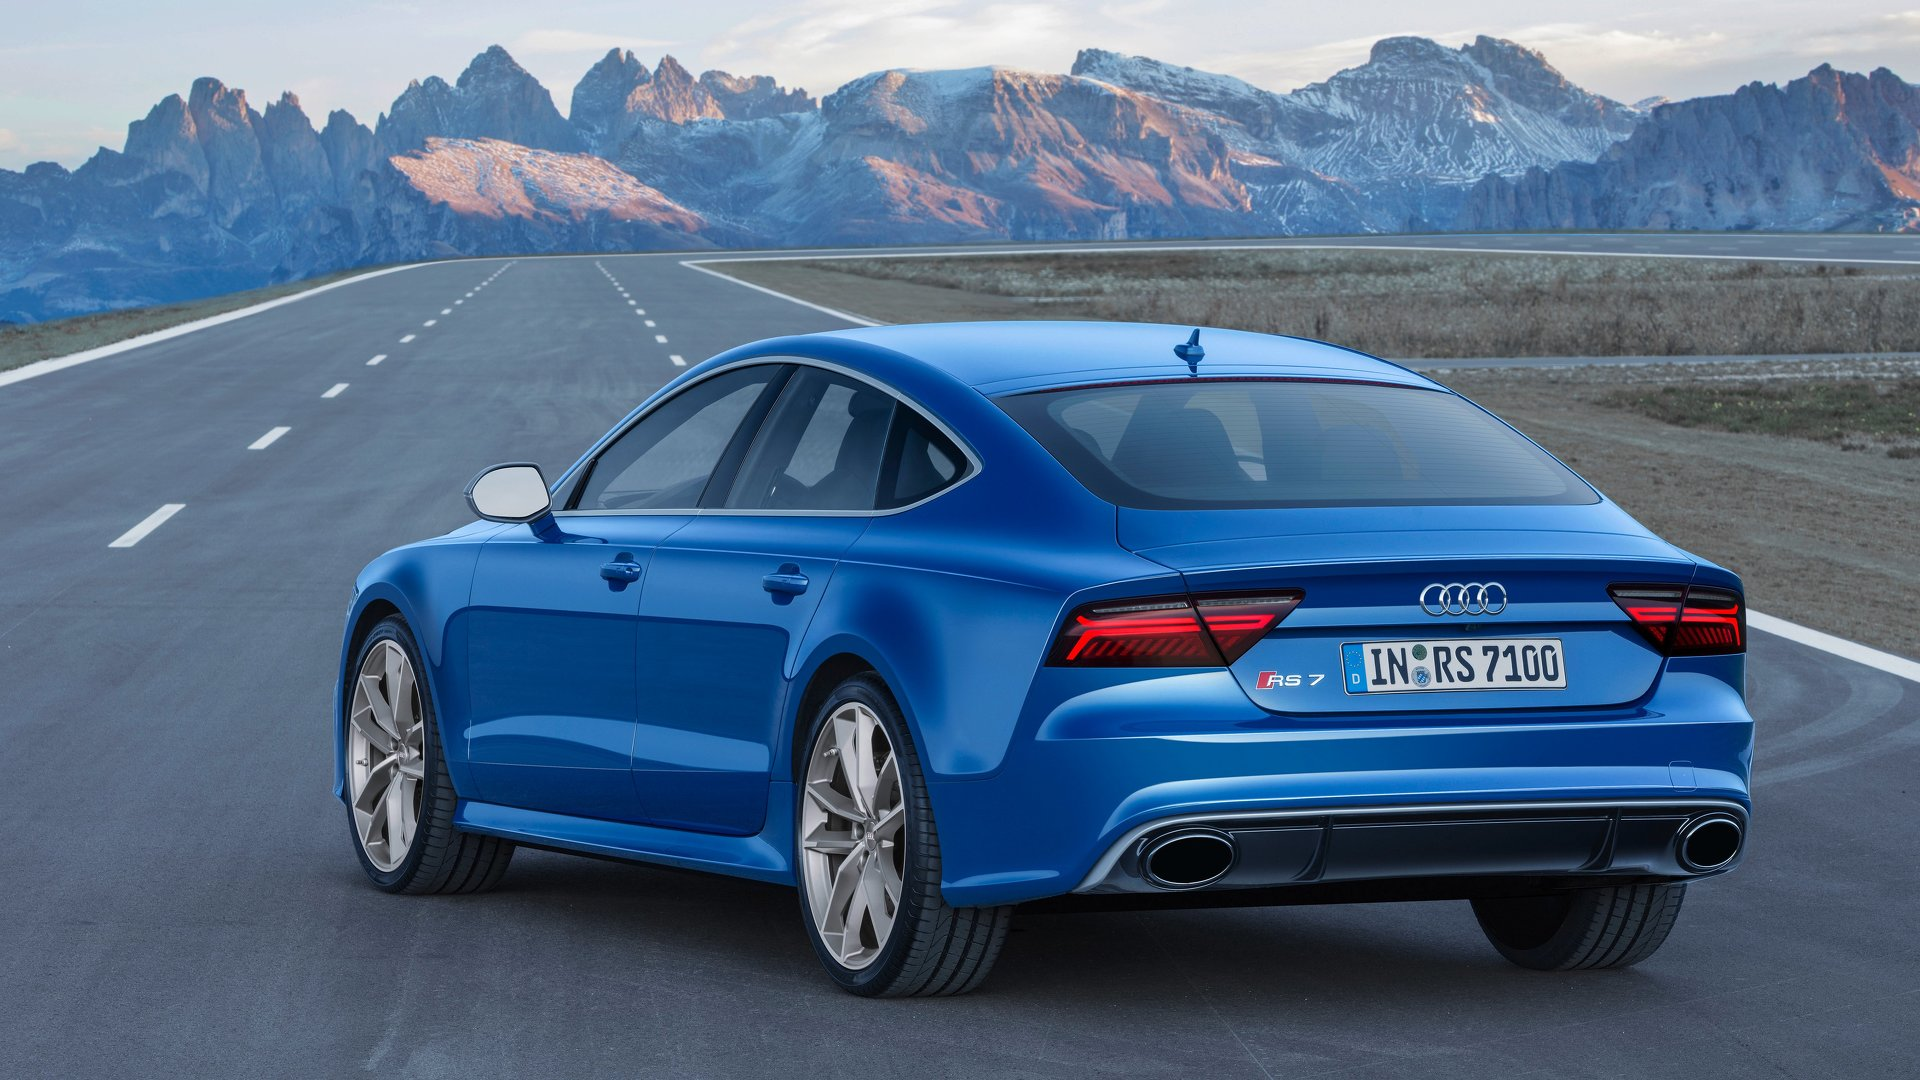 Audi RS7 News and Reviews